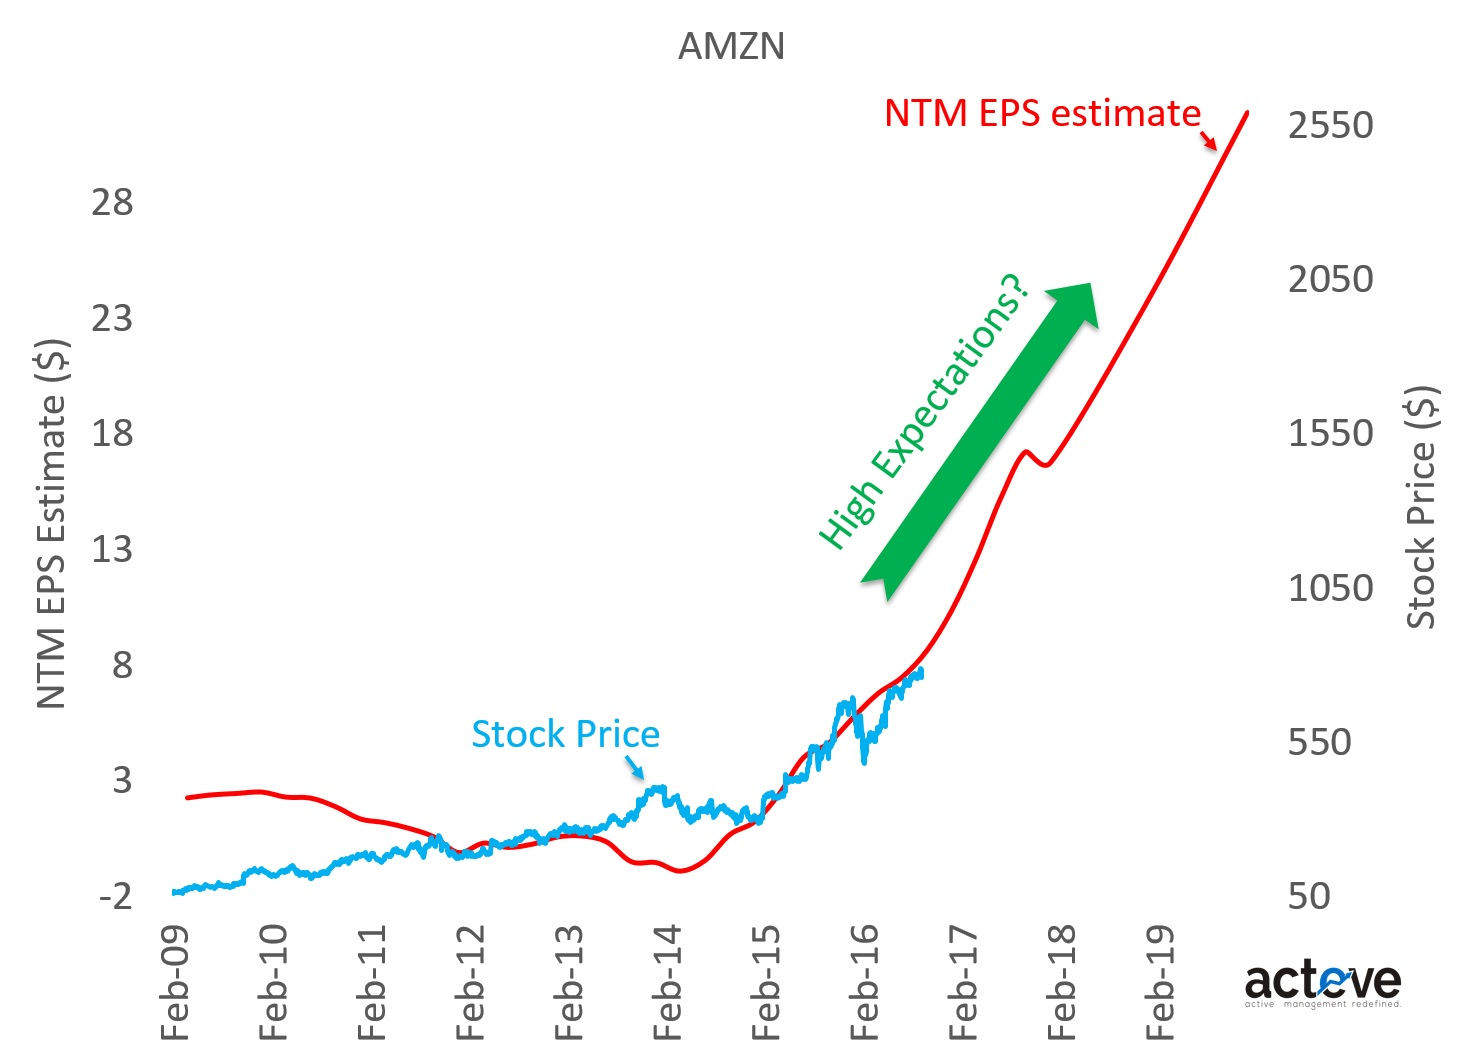 AMZN stock vs. NTM EPS